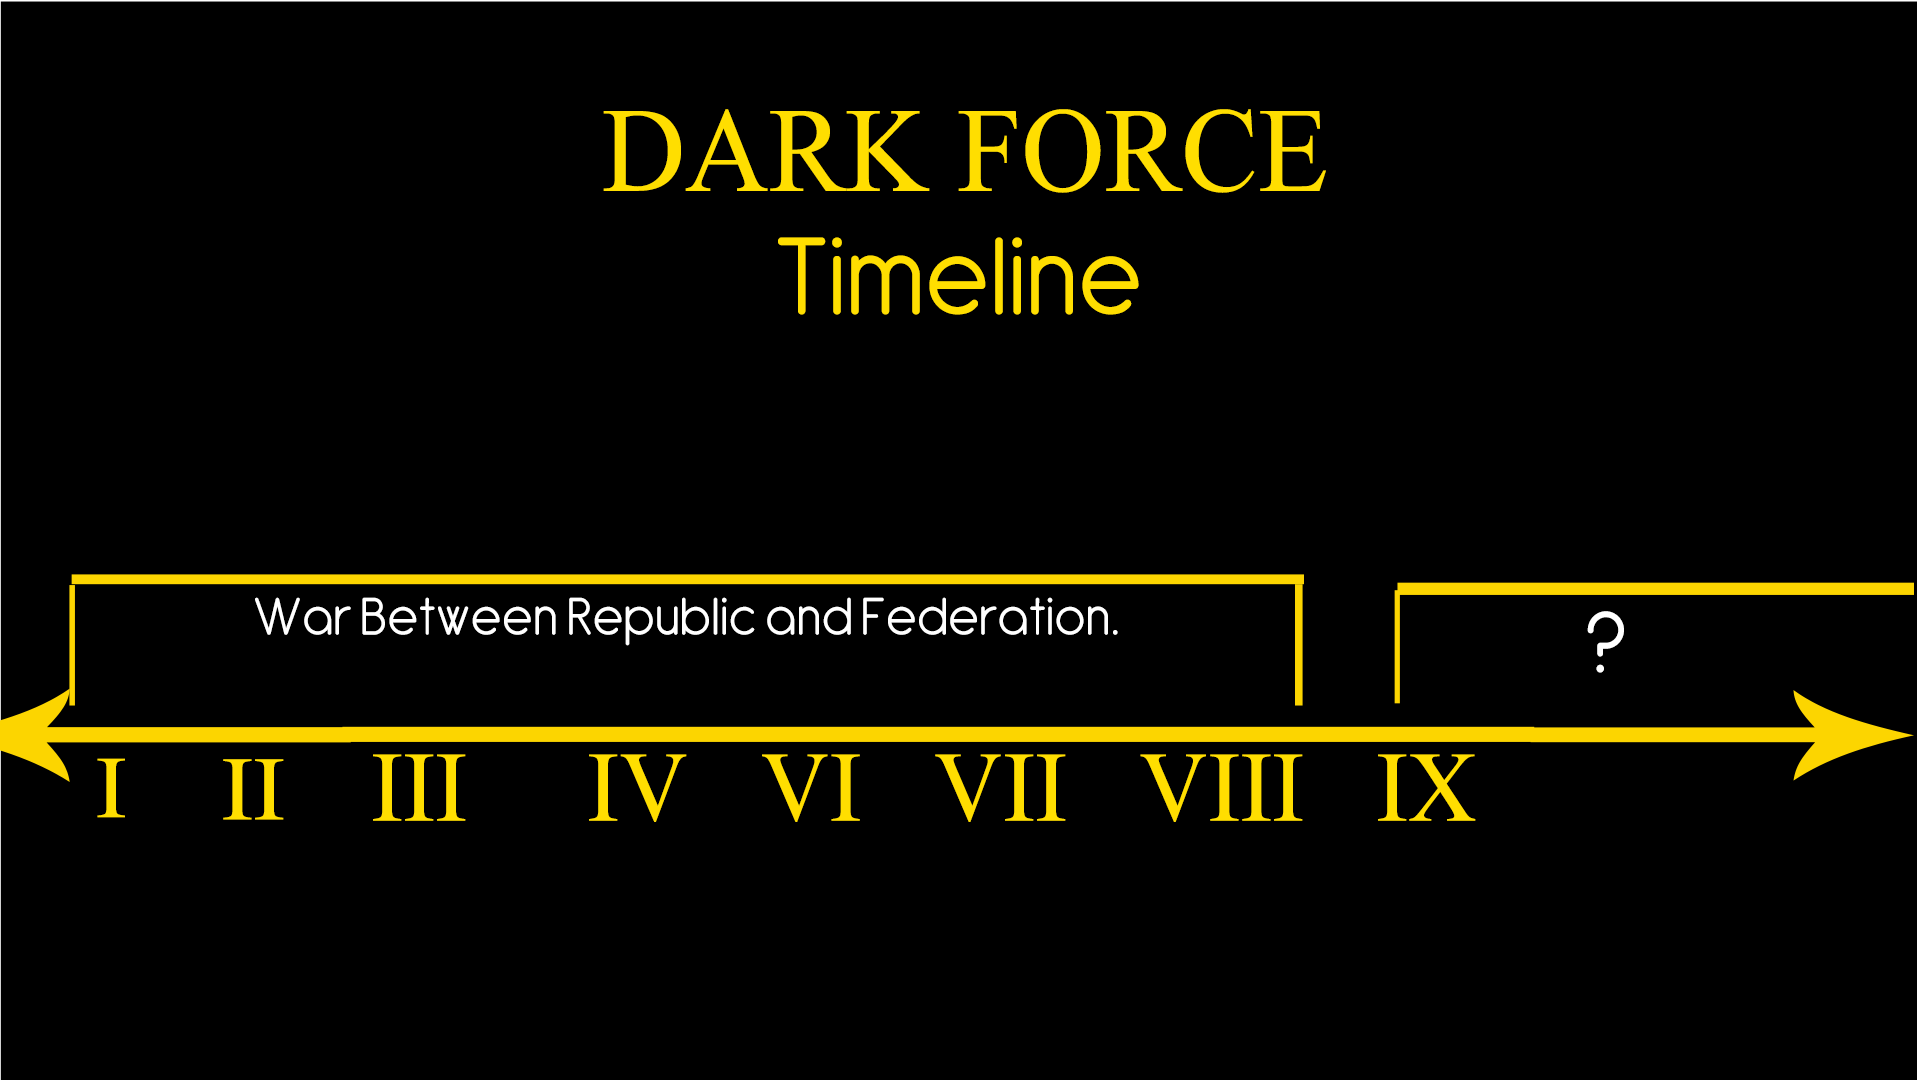 Dark Force Timeline.png